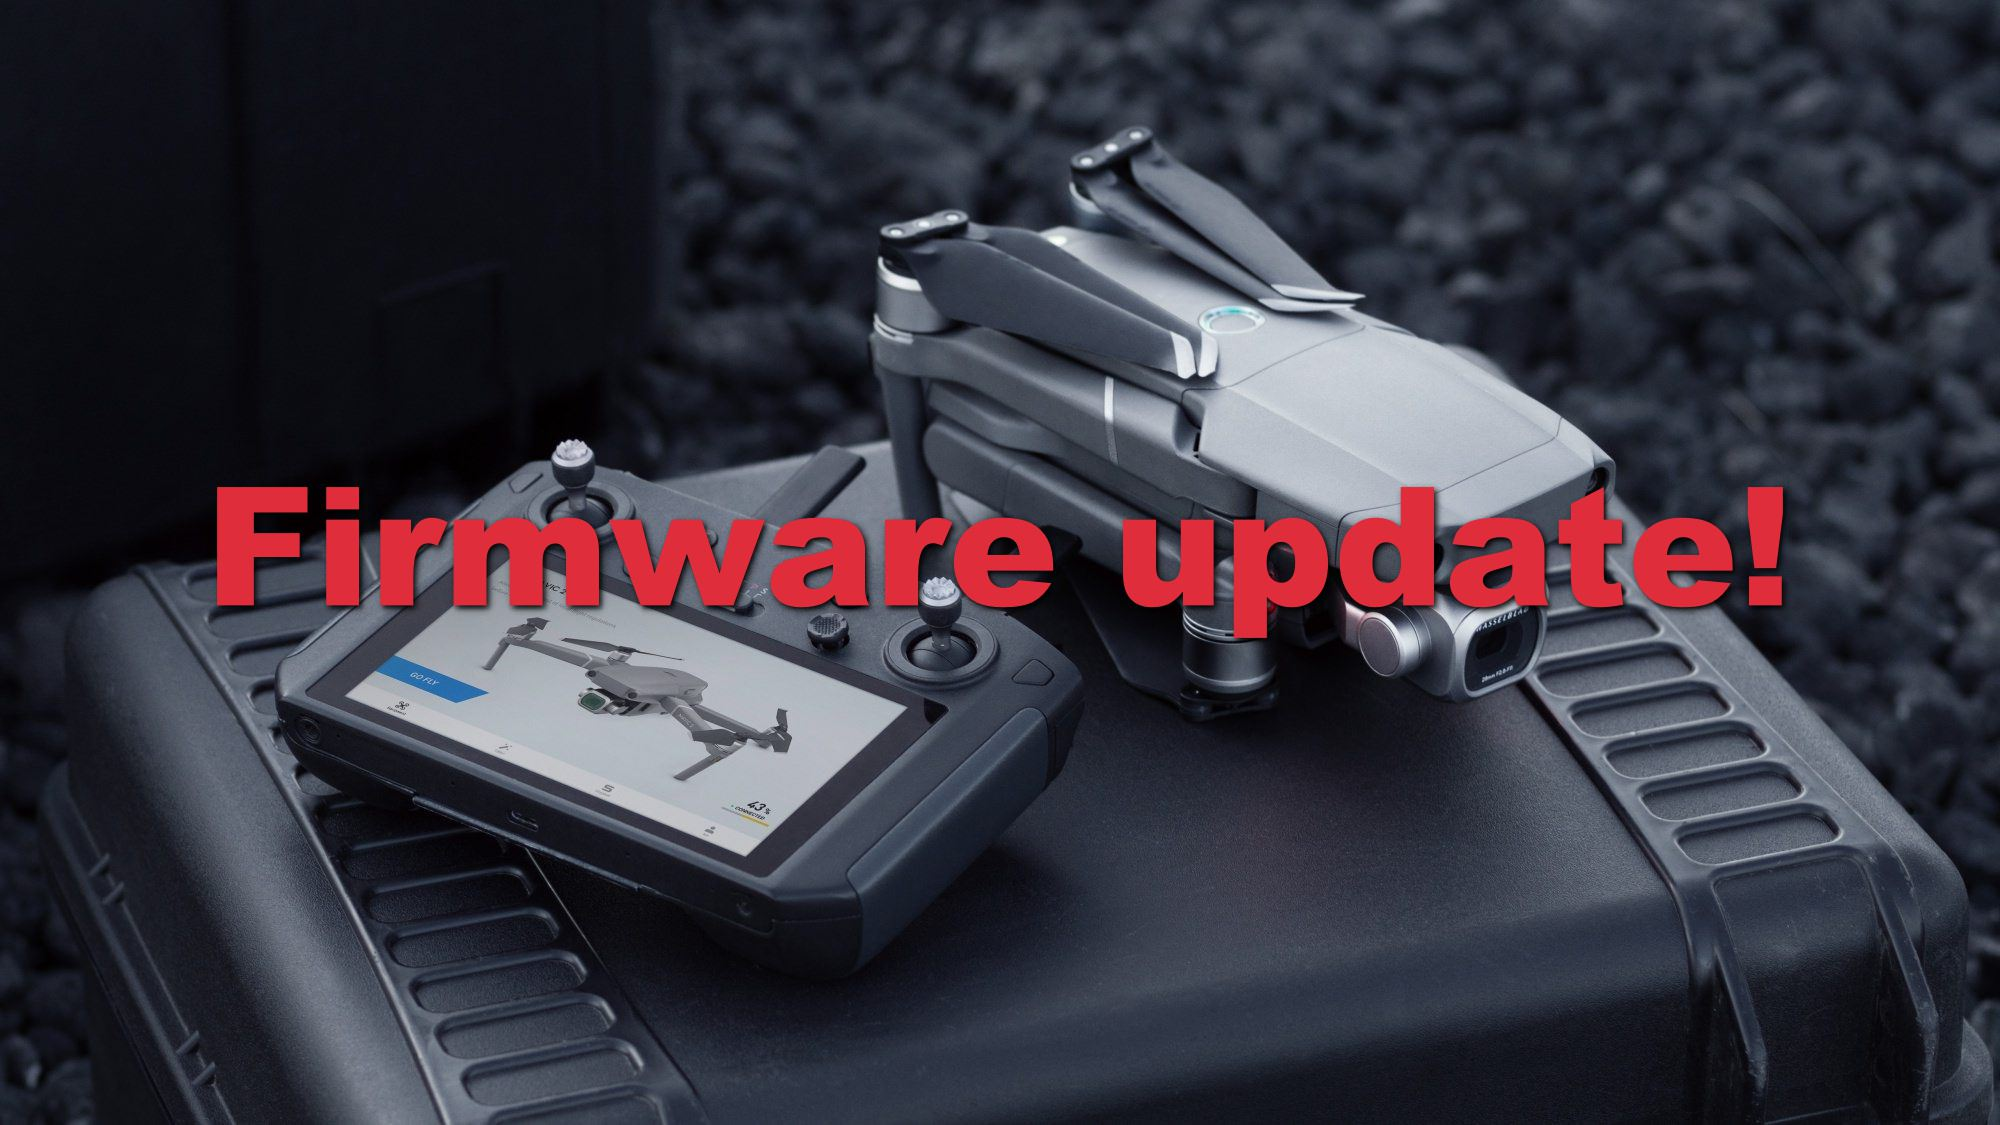 Out of stock DJI Smart Controller gets firmware update